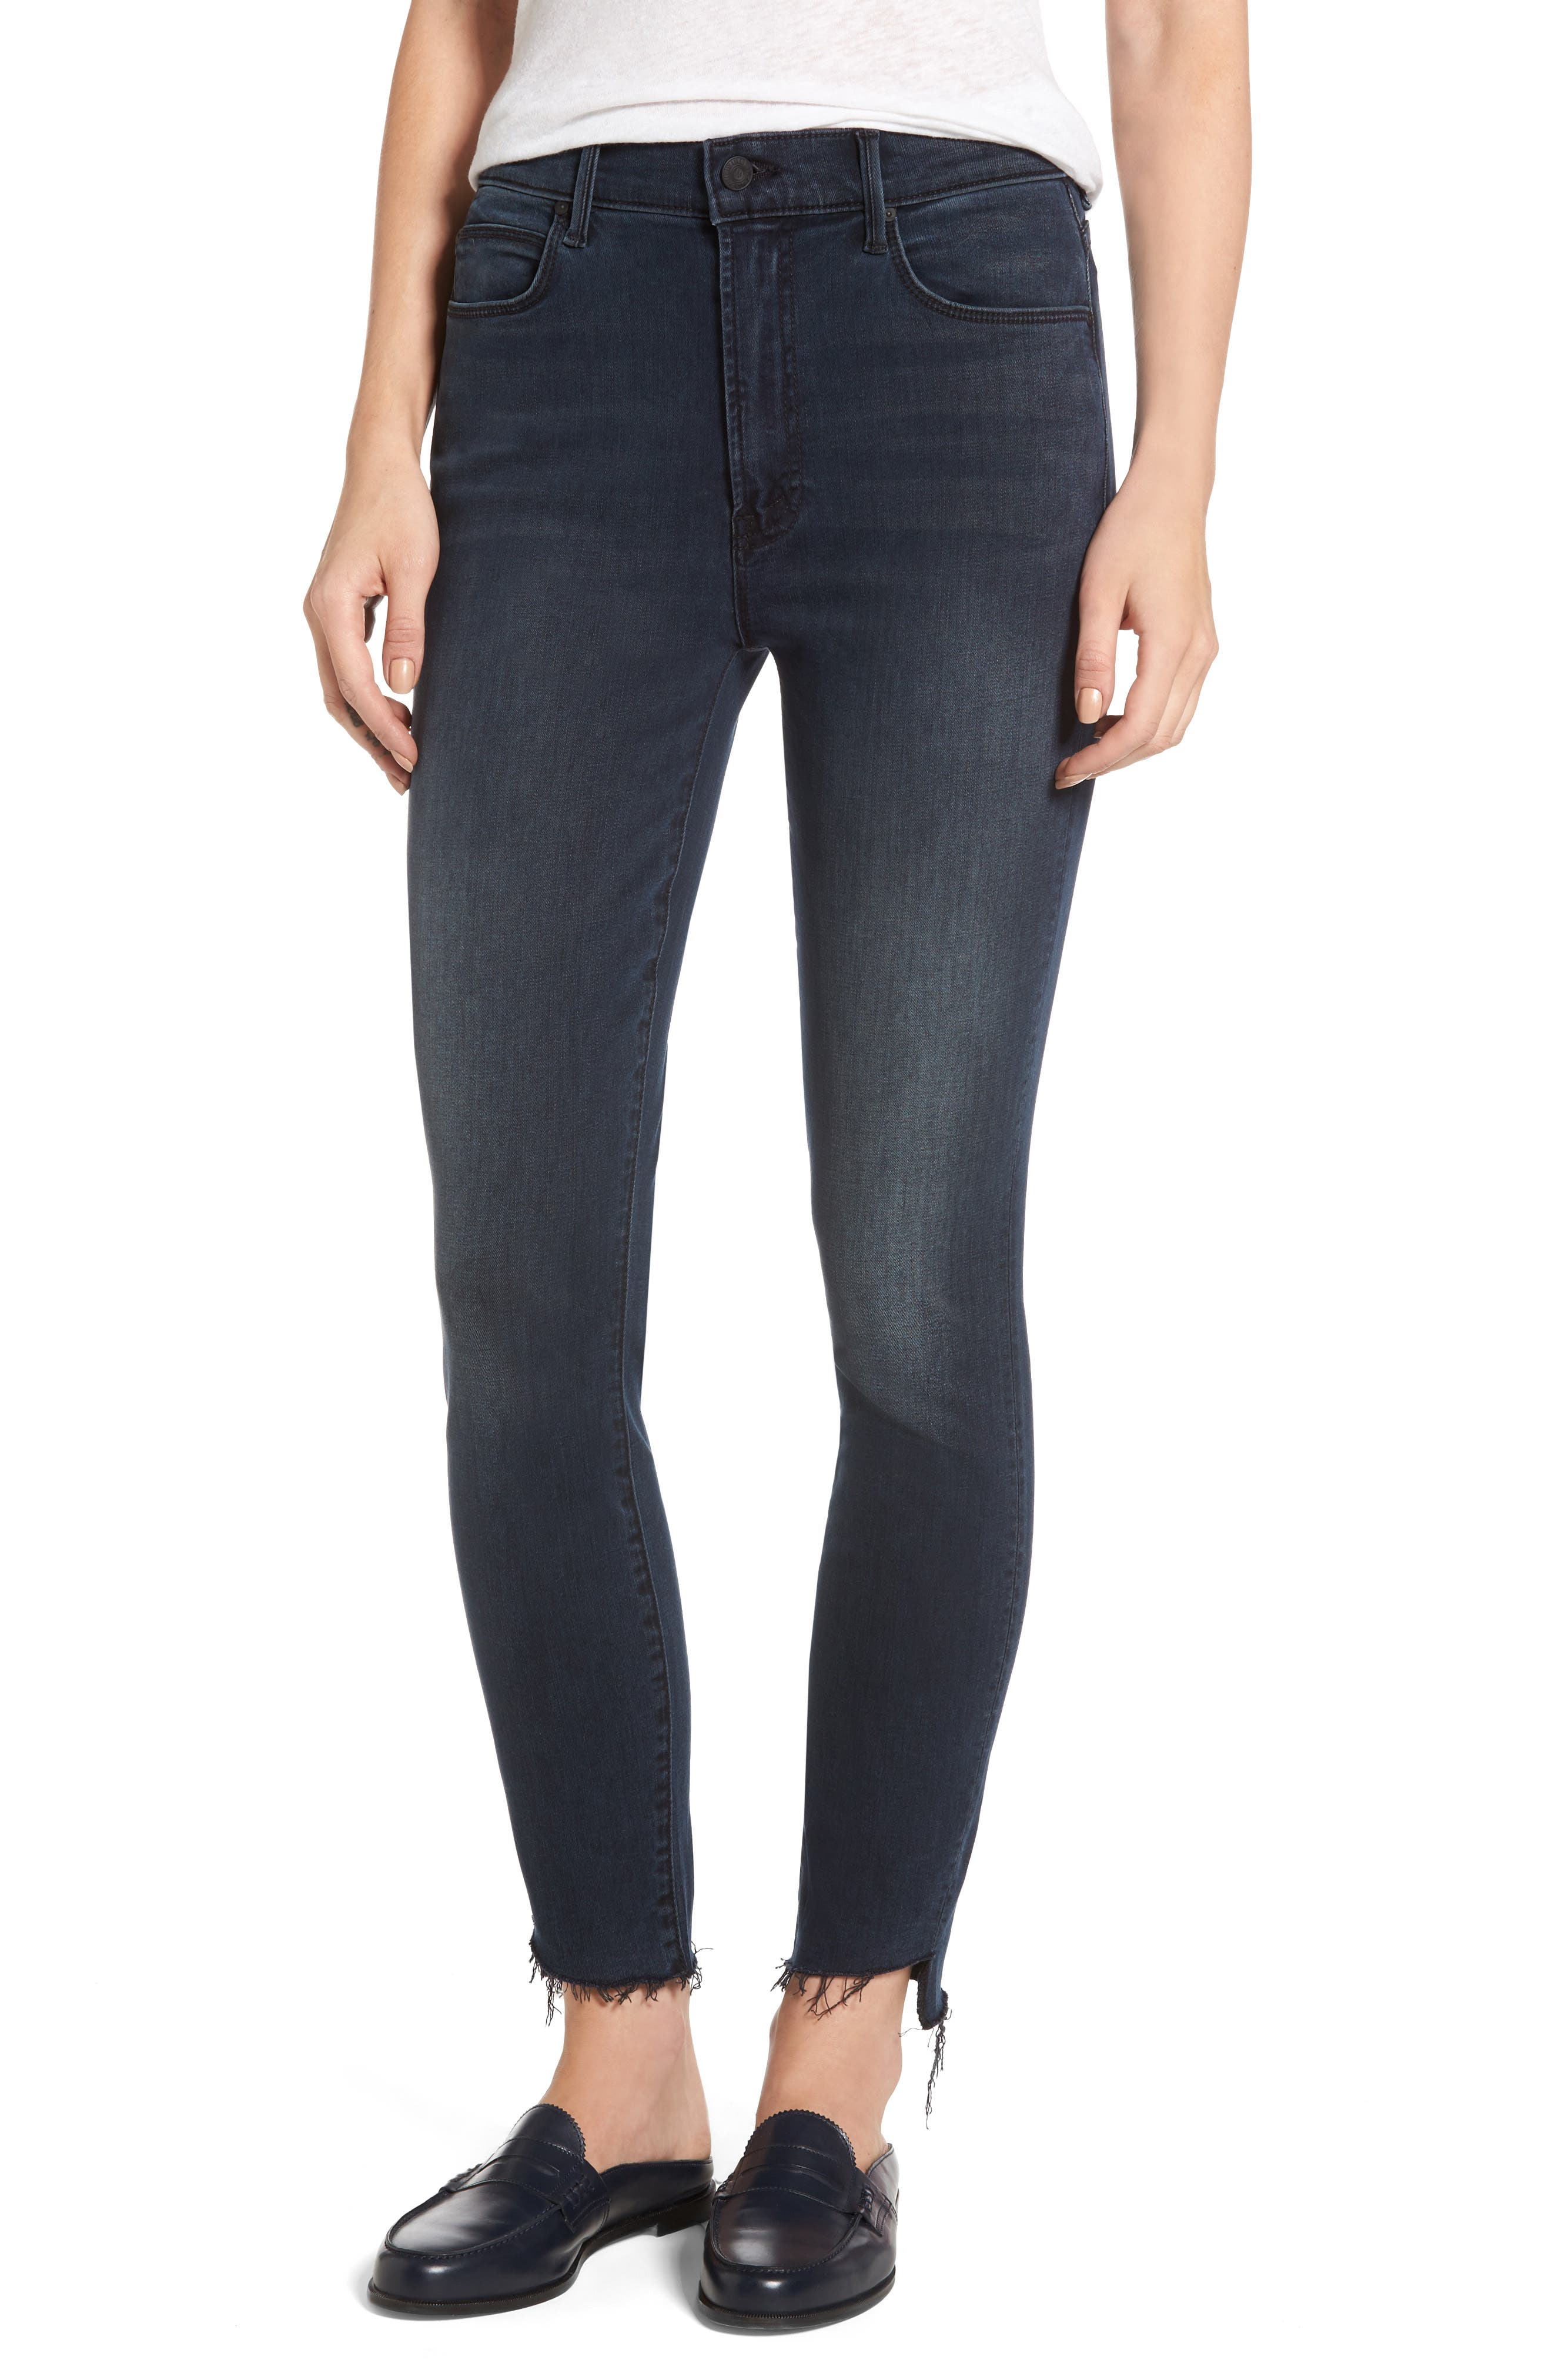 MOTHER The Stunner High Waist Frayed Step Hem Jeans (My Wildest Ride)